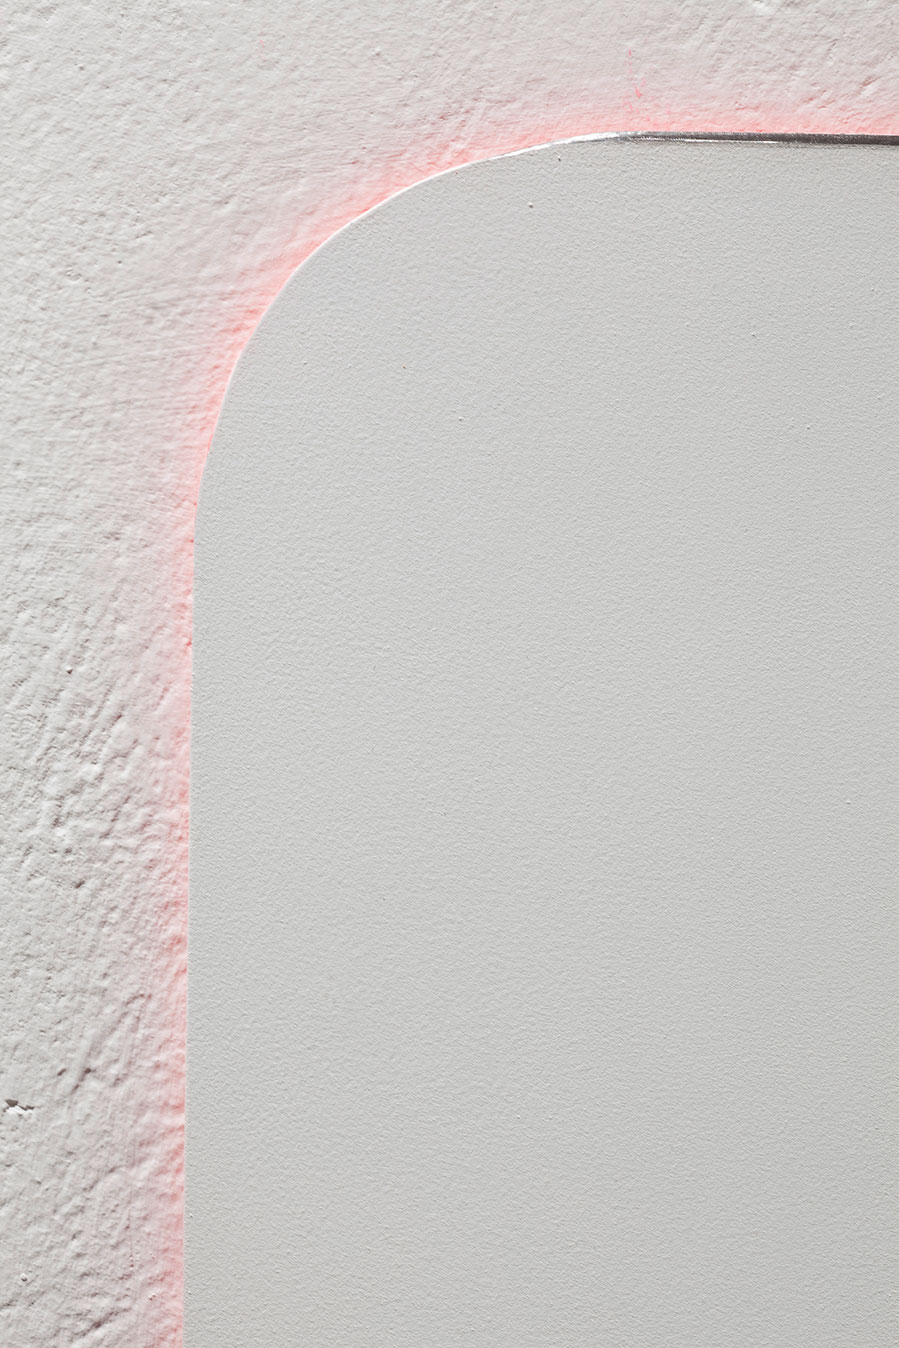 2.'Untitled%22#8, 2015_acrylic and epoxi color on metal sheet,110x100cm_detail1.jpg